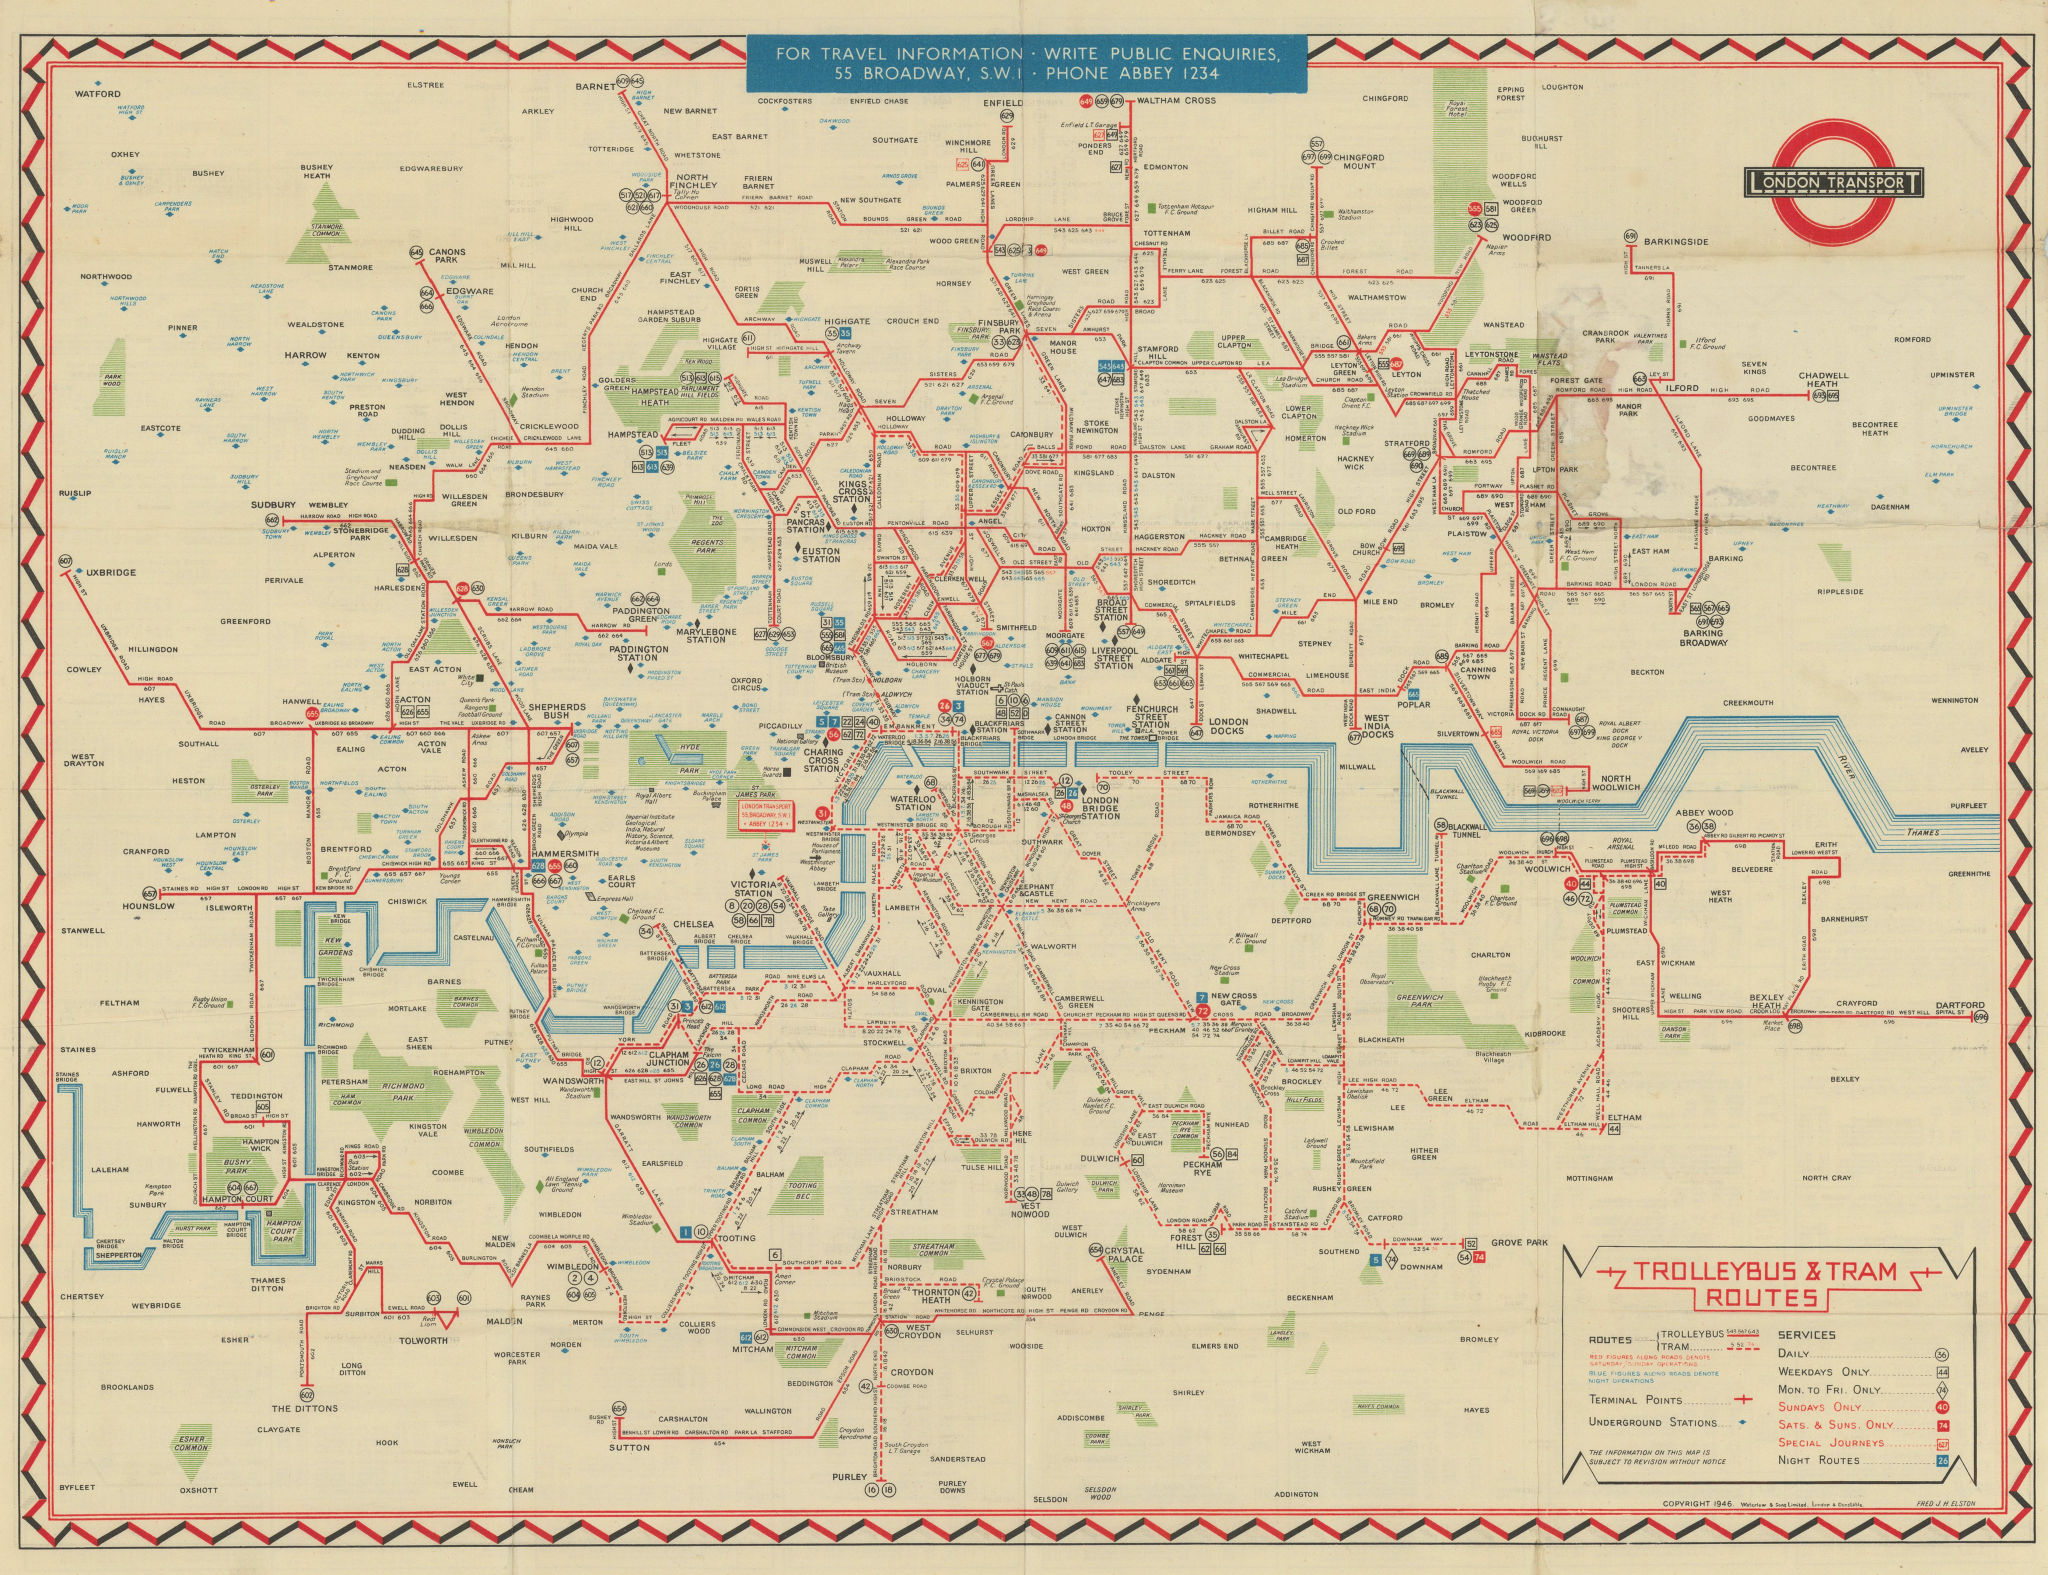 London Transport Trolleybus & Tram map of Routes. ELSTON. #1 1946 old